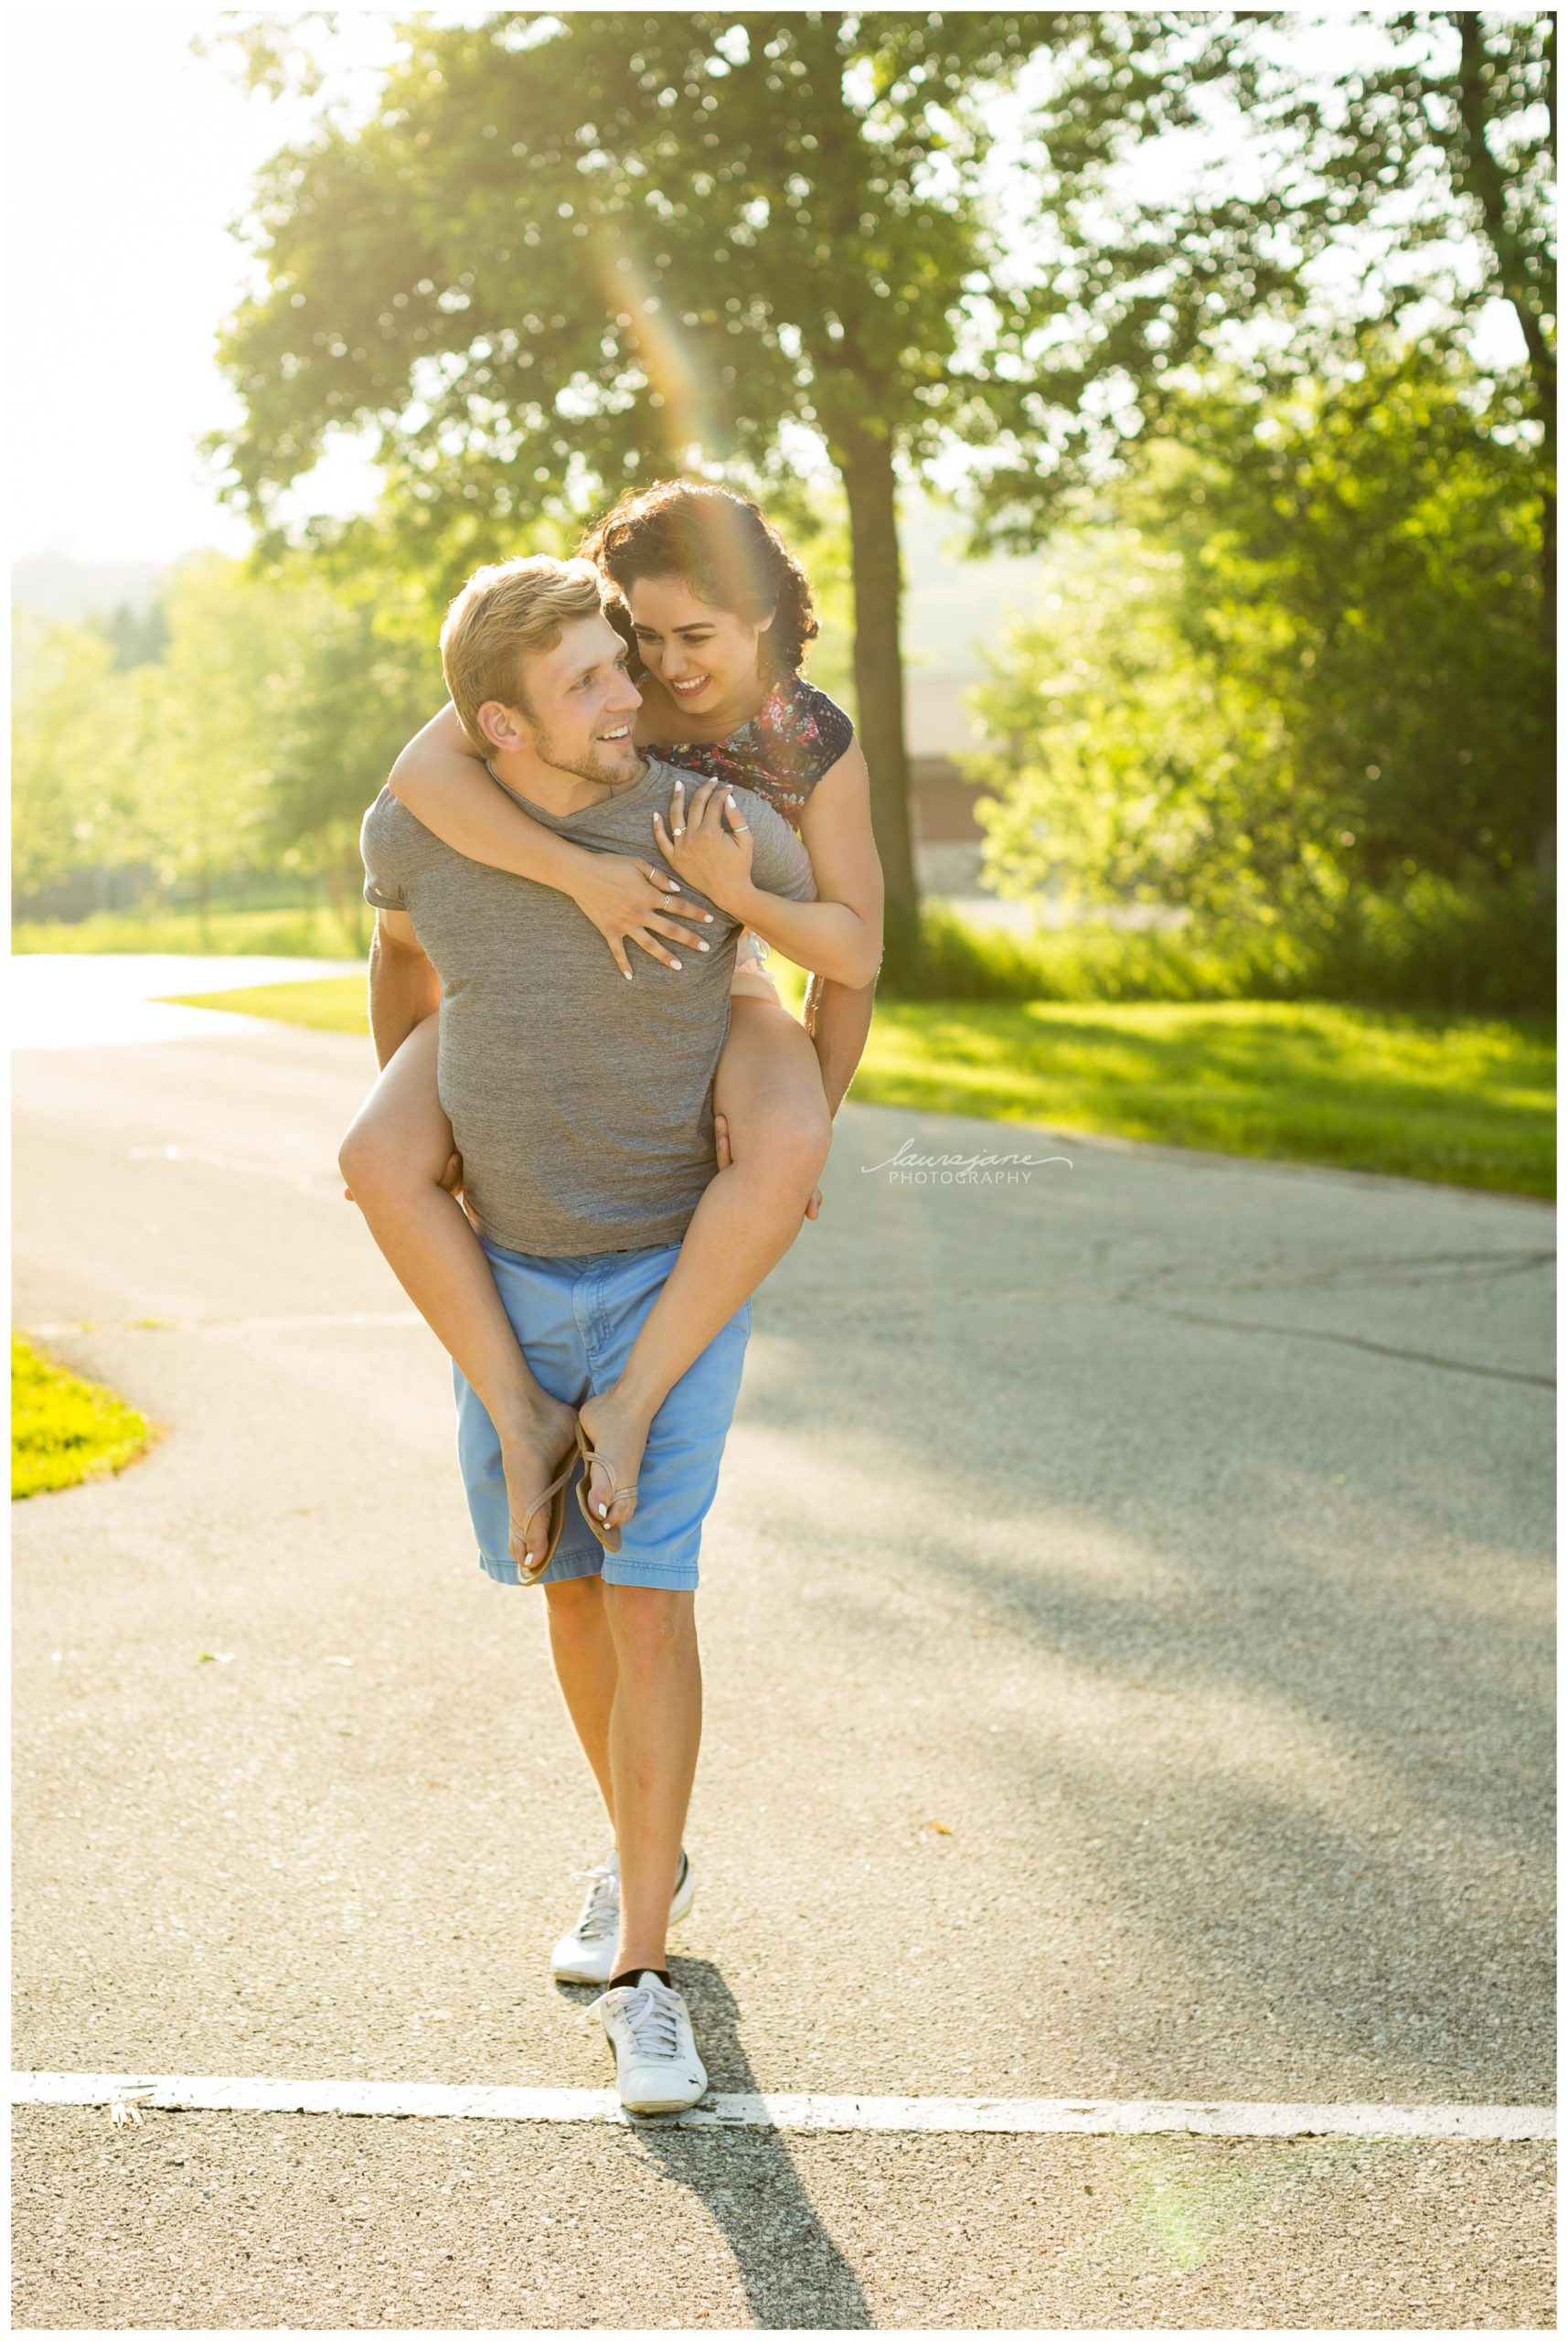 Fun engagement pictures in Waukesha